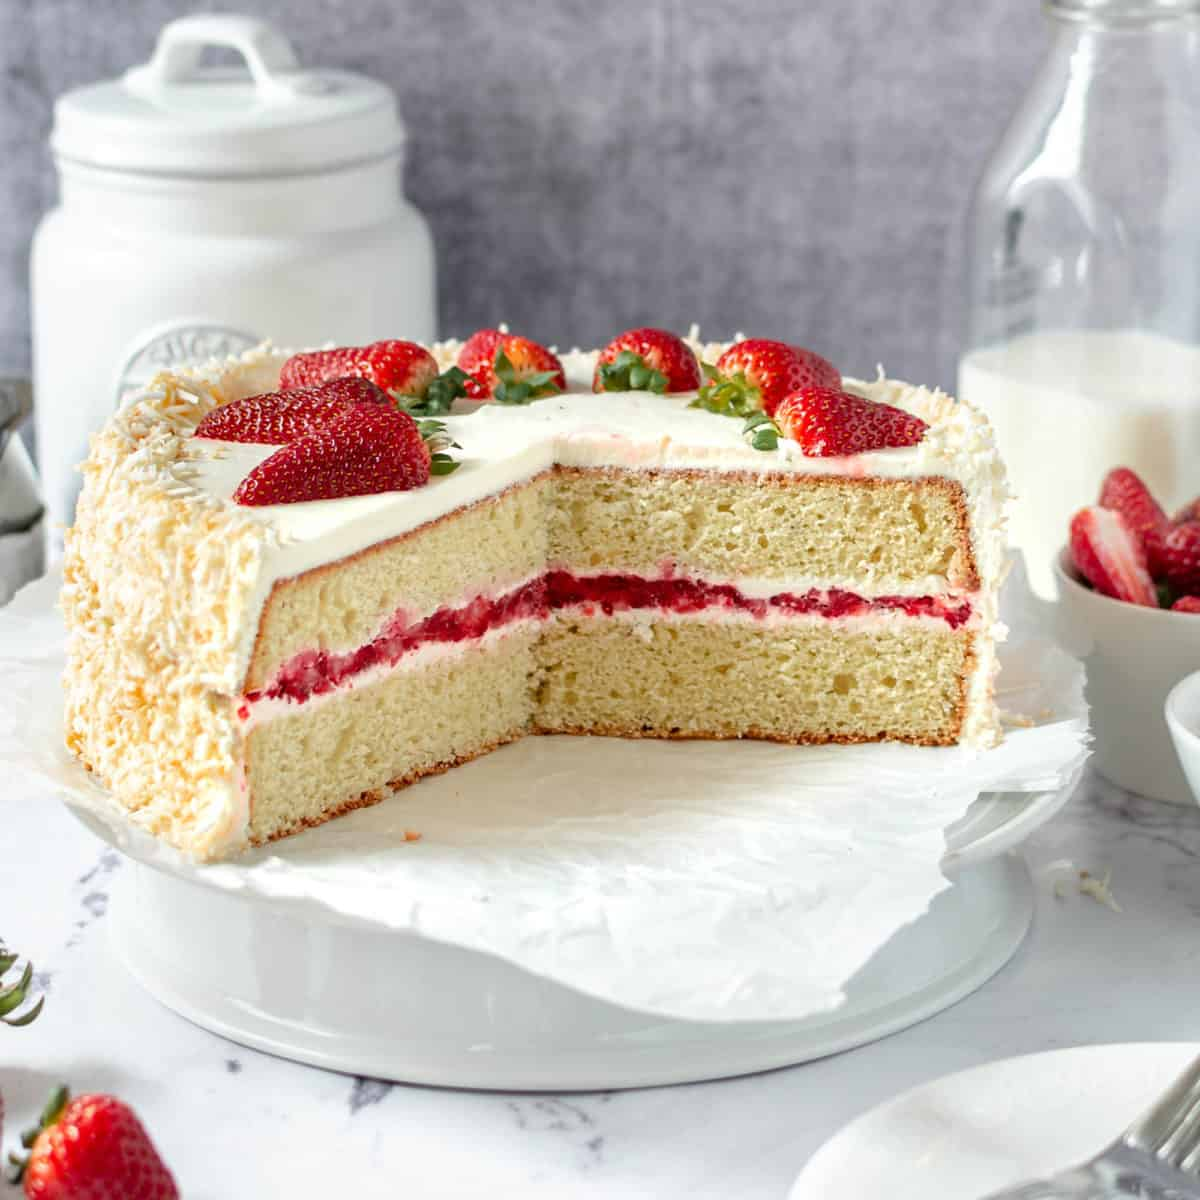 A coconut strawberry cake with some slices cut out of it.